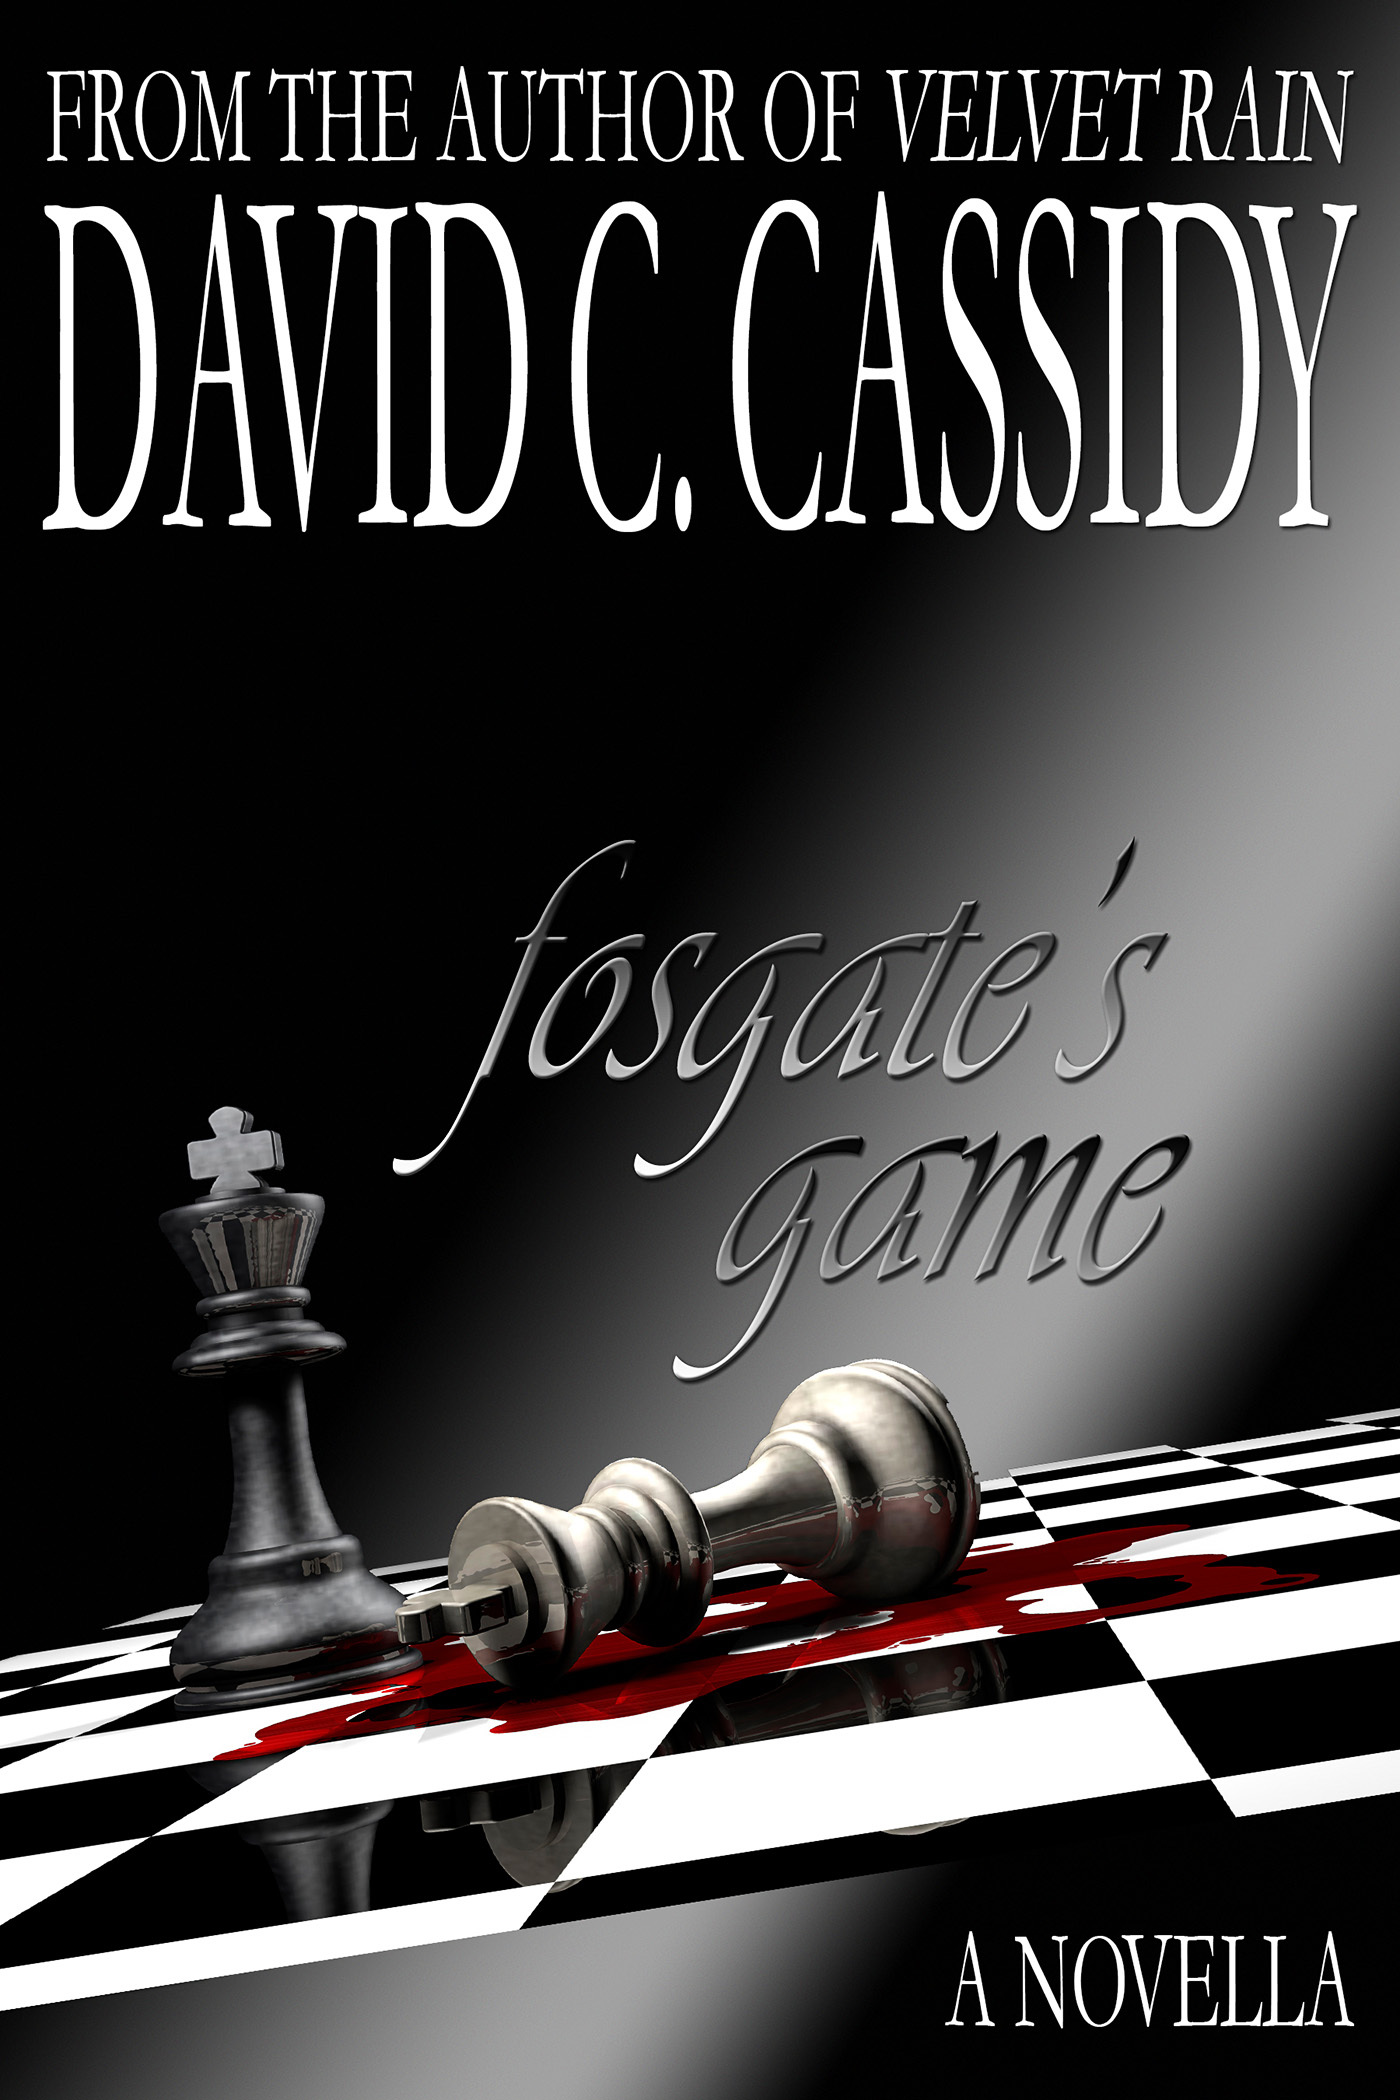 Fosgate's Game: A Supernatural Novella